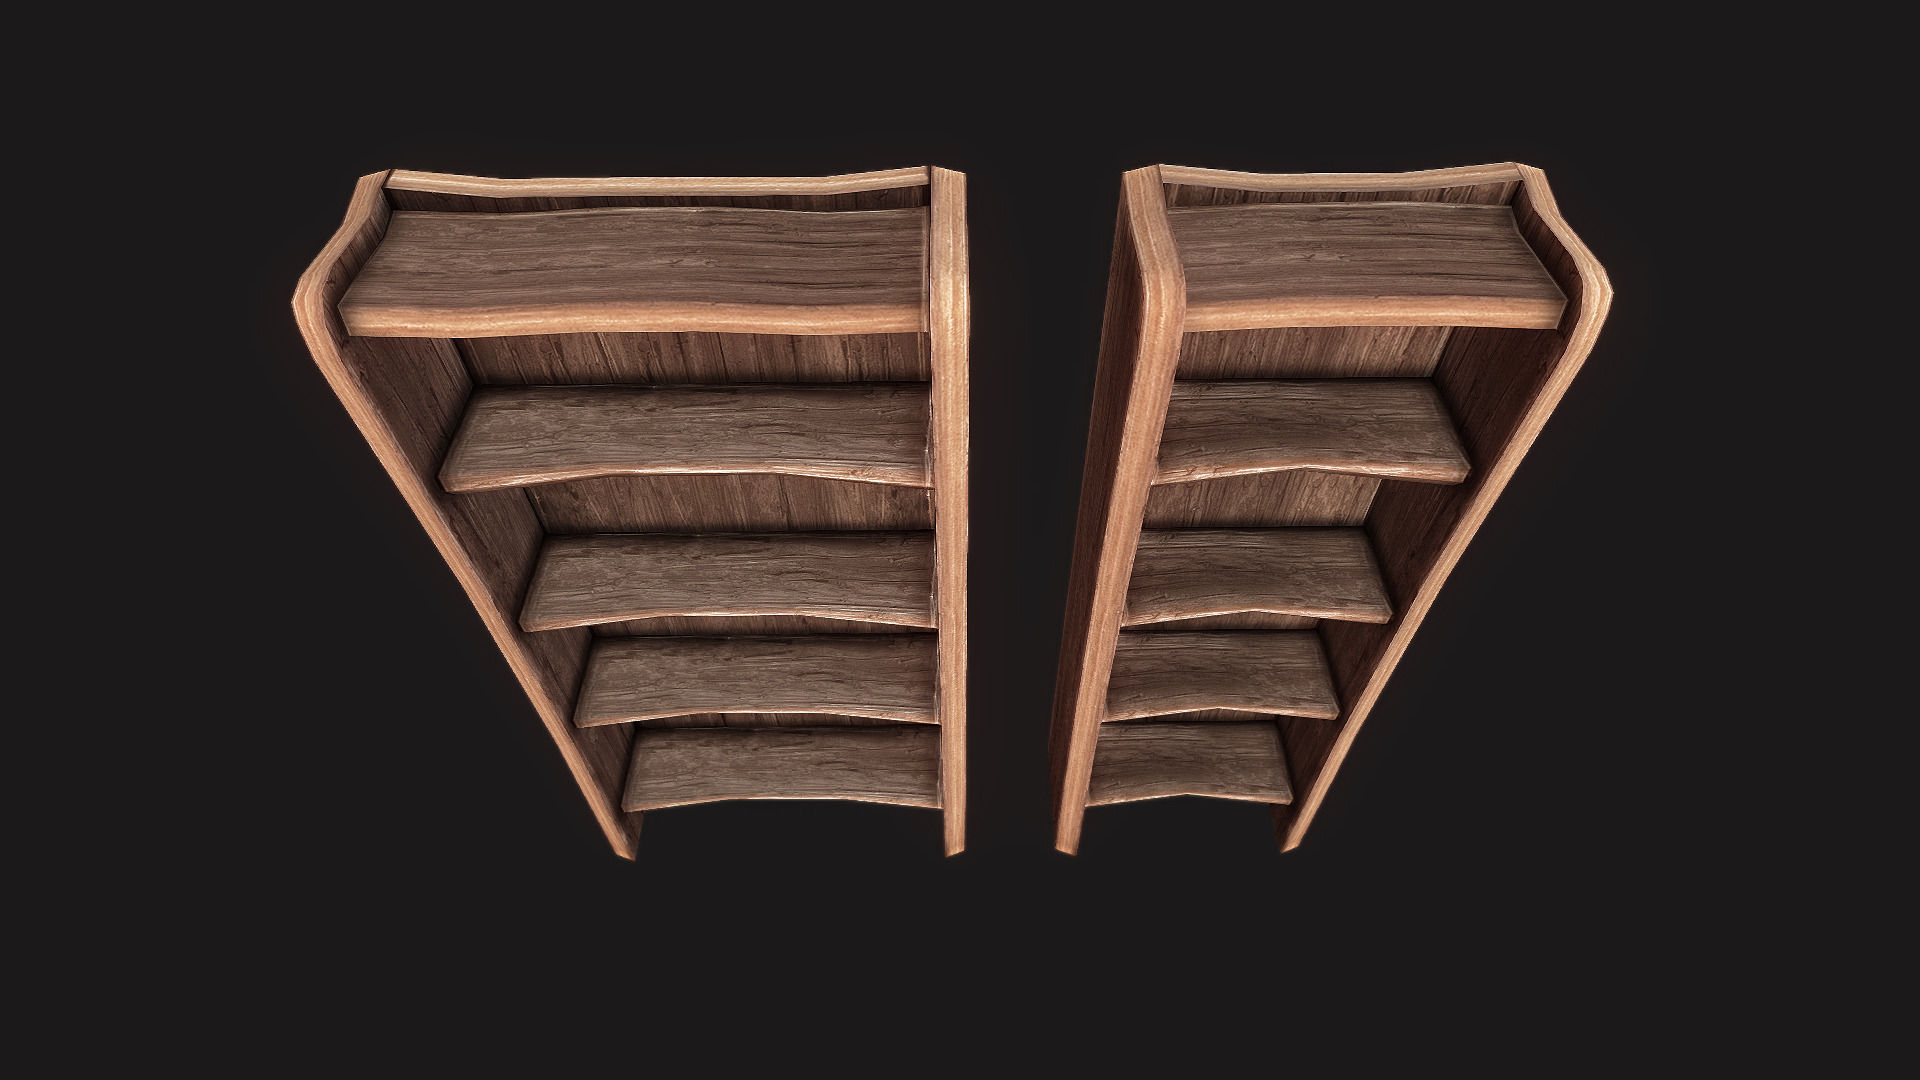 Rustic Wooden Shelf 01 3D Model Game ready .max .obj .3ds .fbx .dae ...